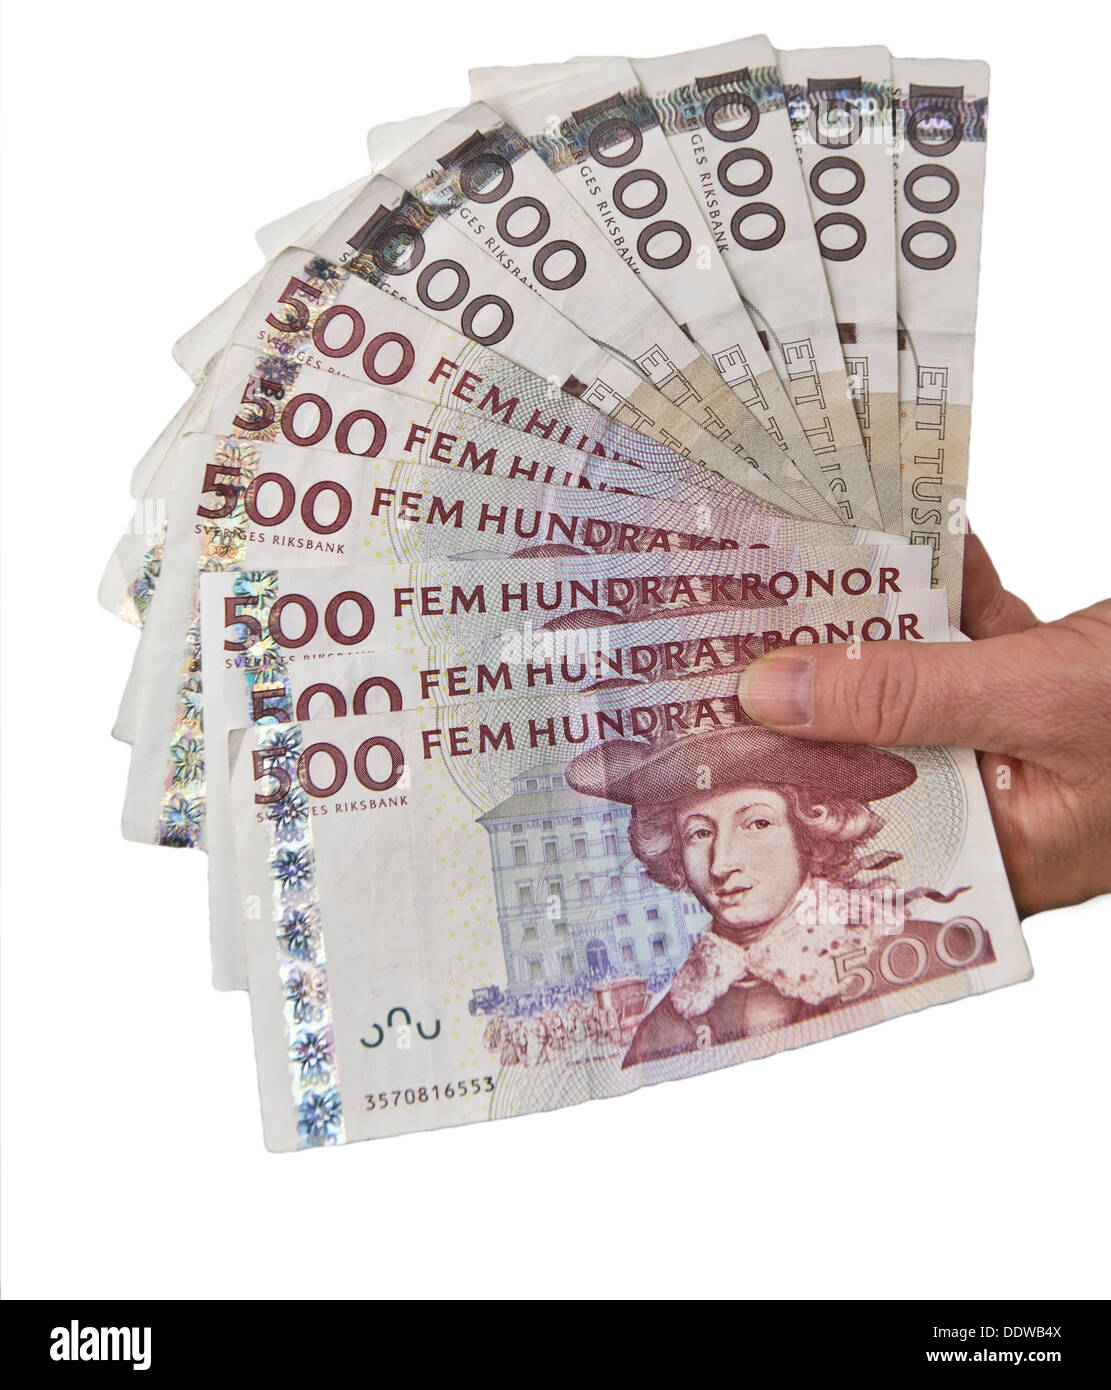 Handful of Swedish 500 and 1000 bills isolated on white background - Stock Image